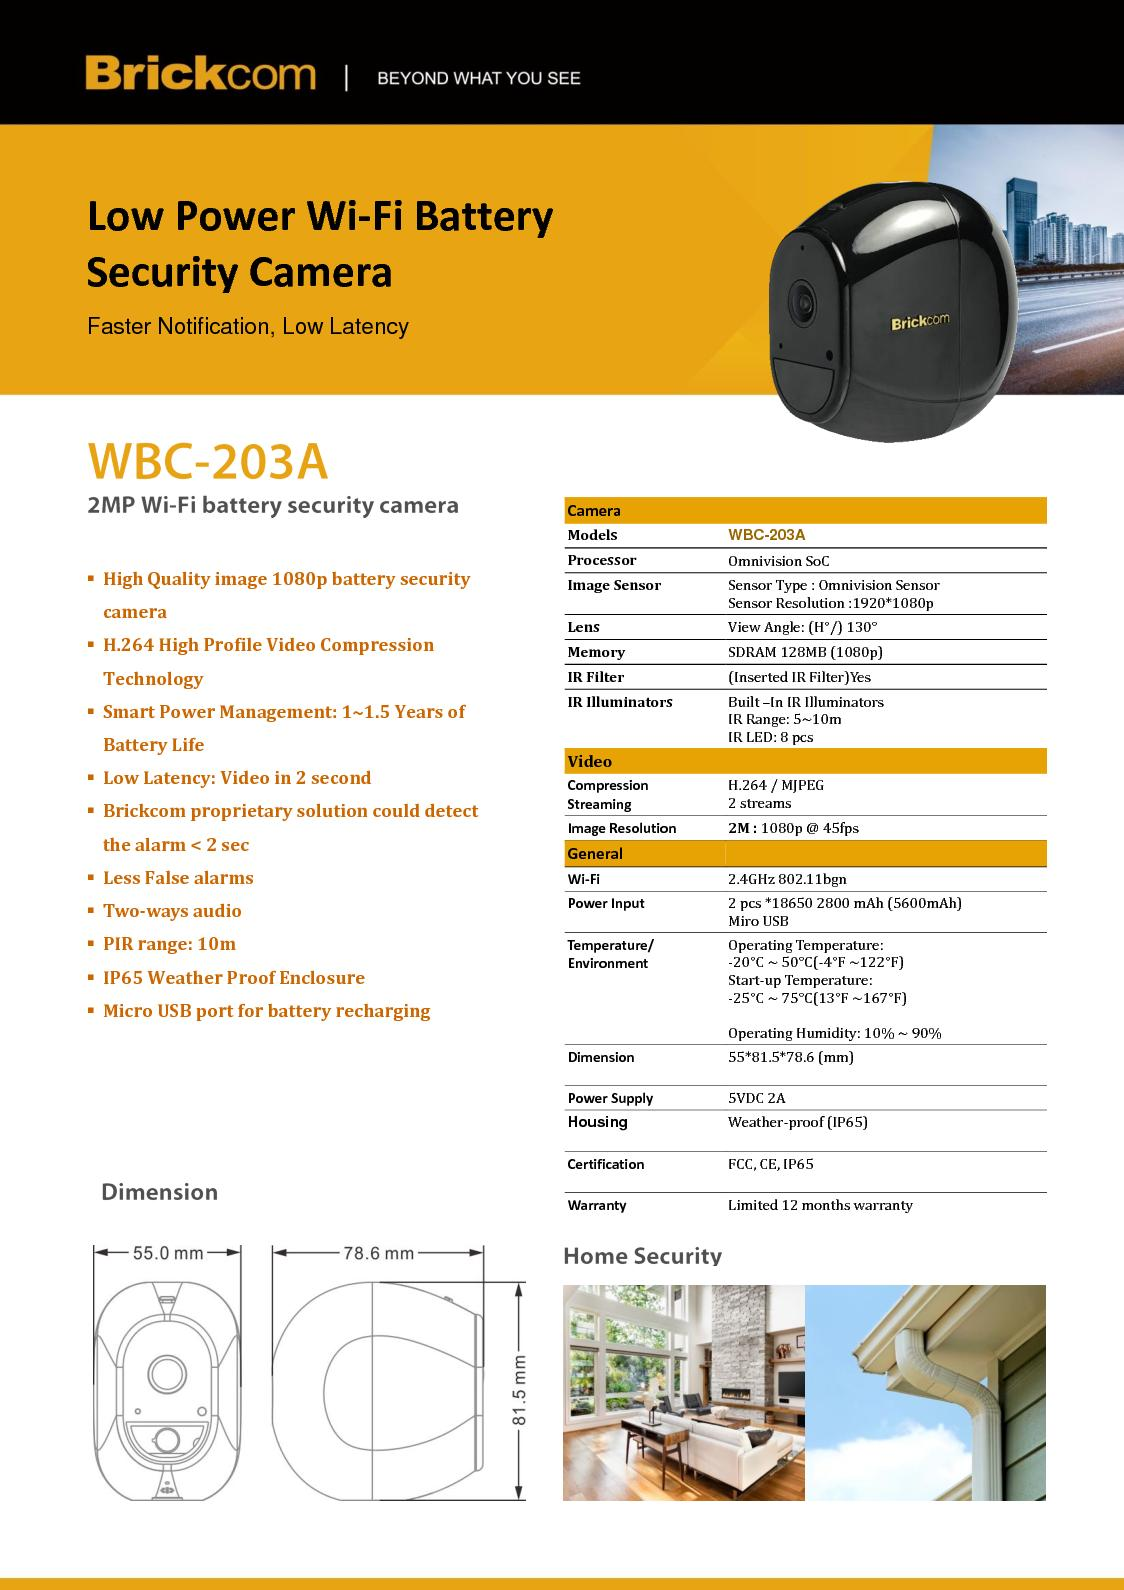 Calaméo - Brickcom WBC-203A Wifi Power Battery Camera